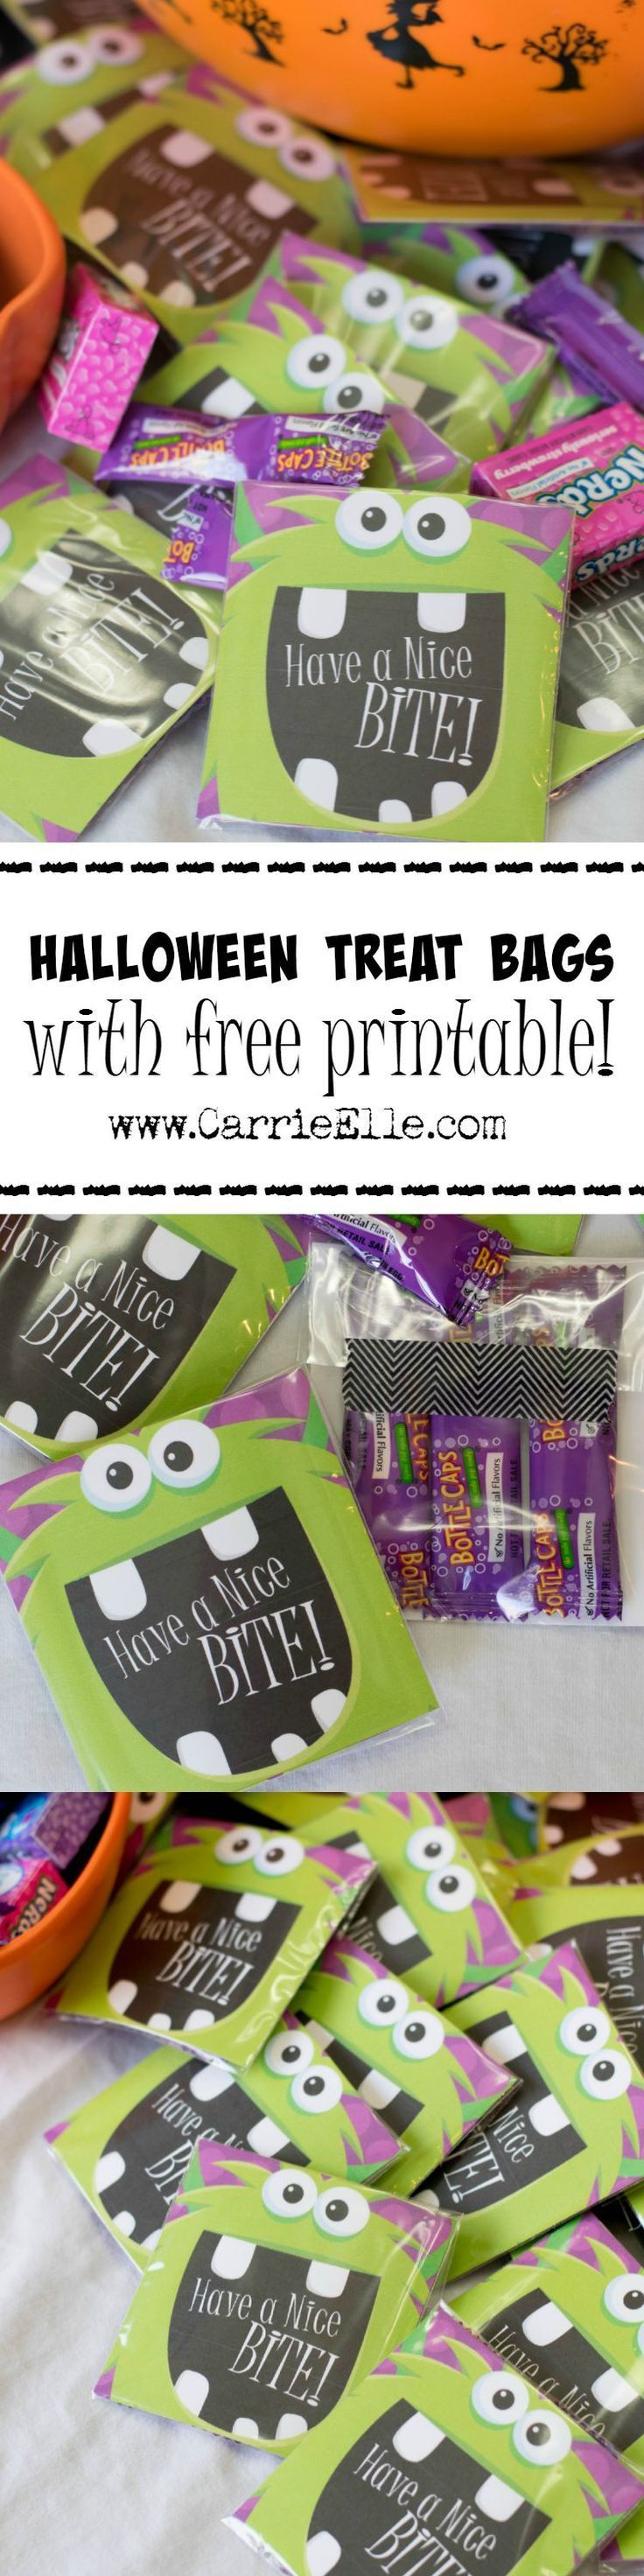 DIY Halloween Treat Bags - free Halloween printable included so you can make your own cute Halloween treat bags! These would also be perfect for a monster party! http://www.carrieelle.com